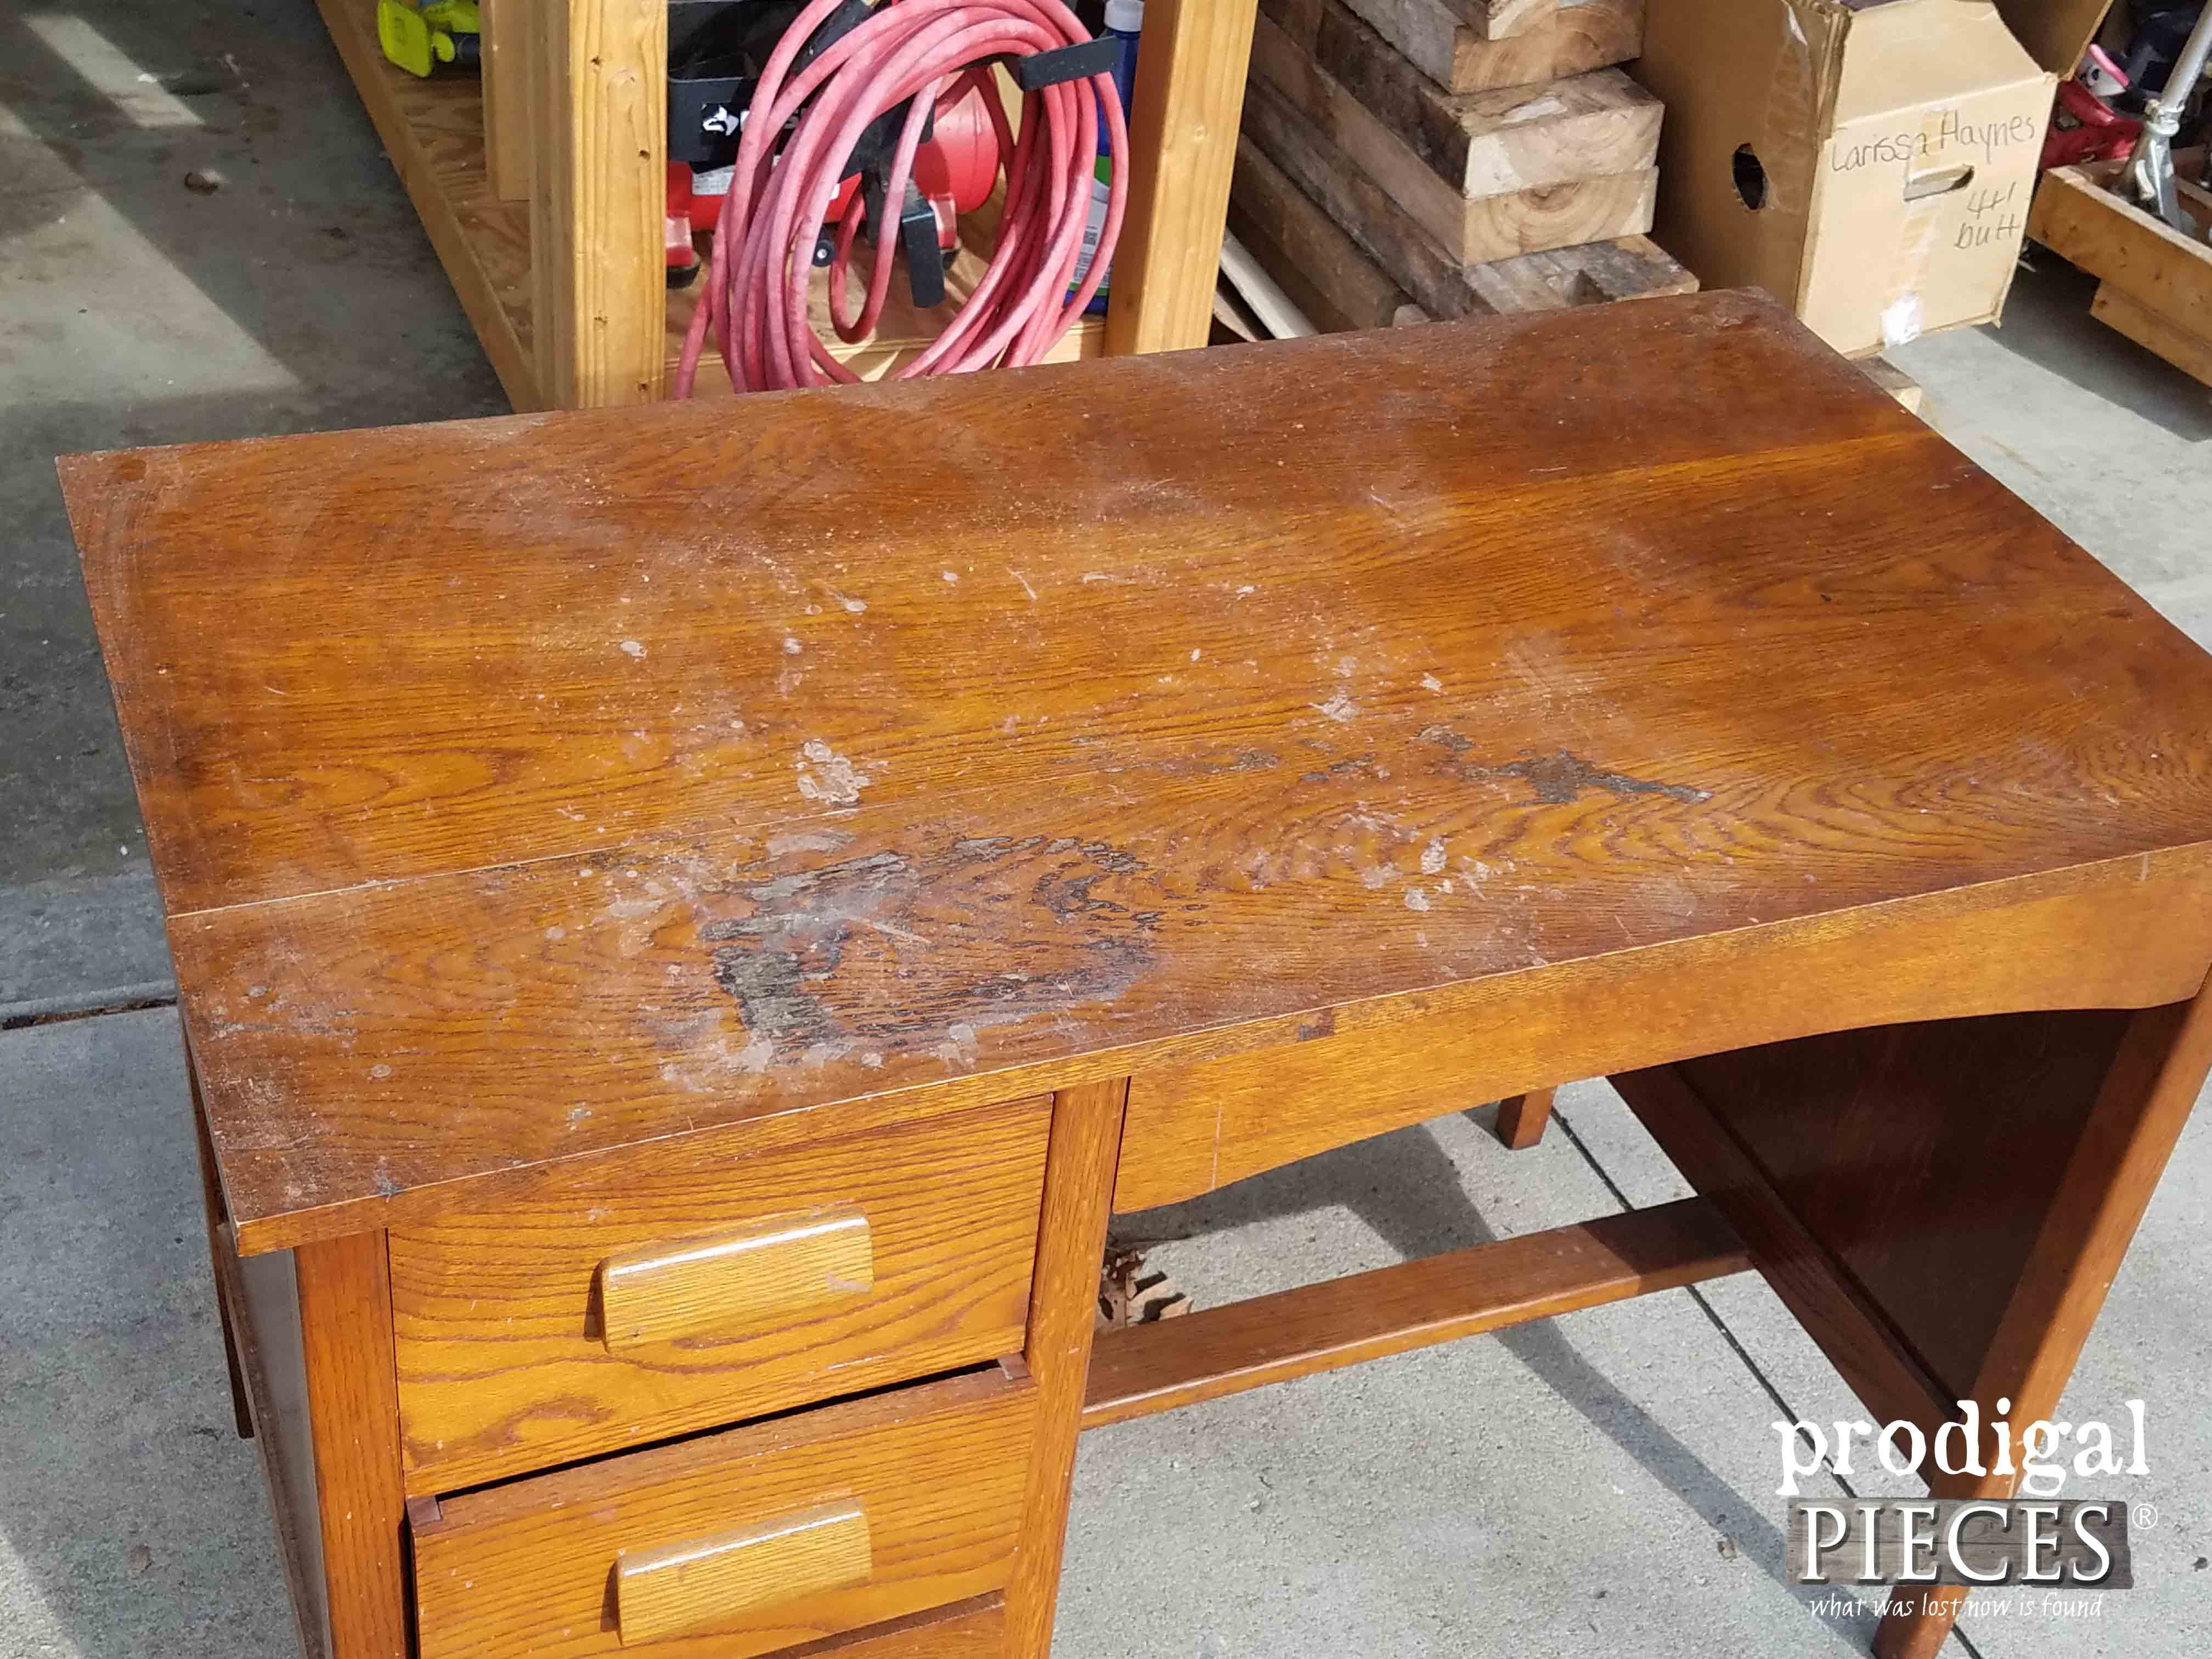 Damaged Top of Oak Desk | Prodigal Pieces | prodigalpieces.com